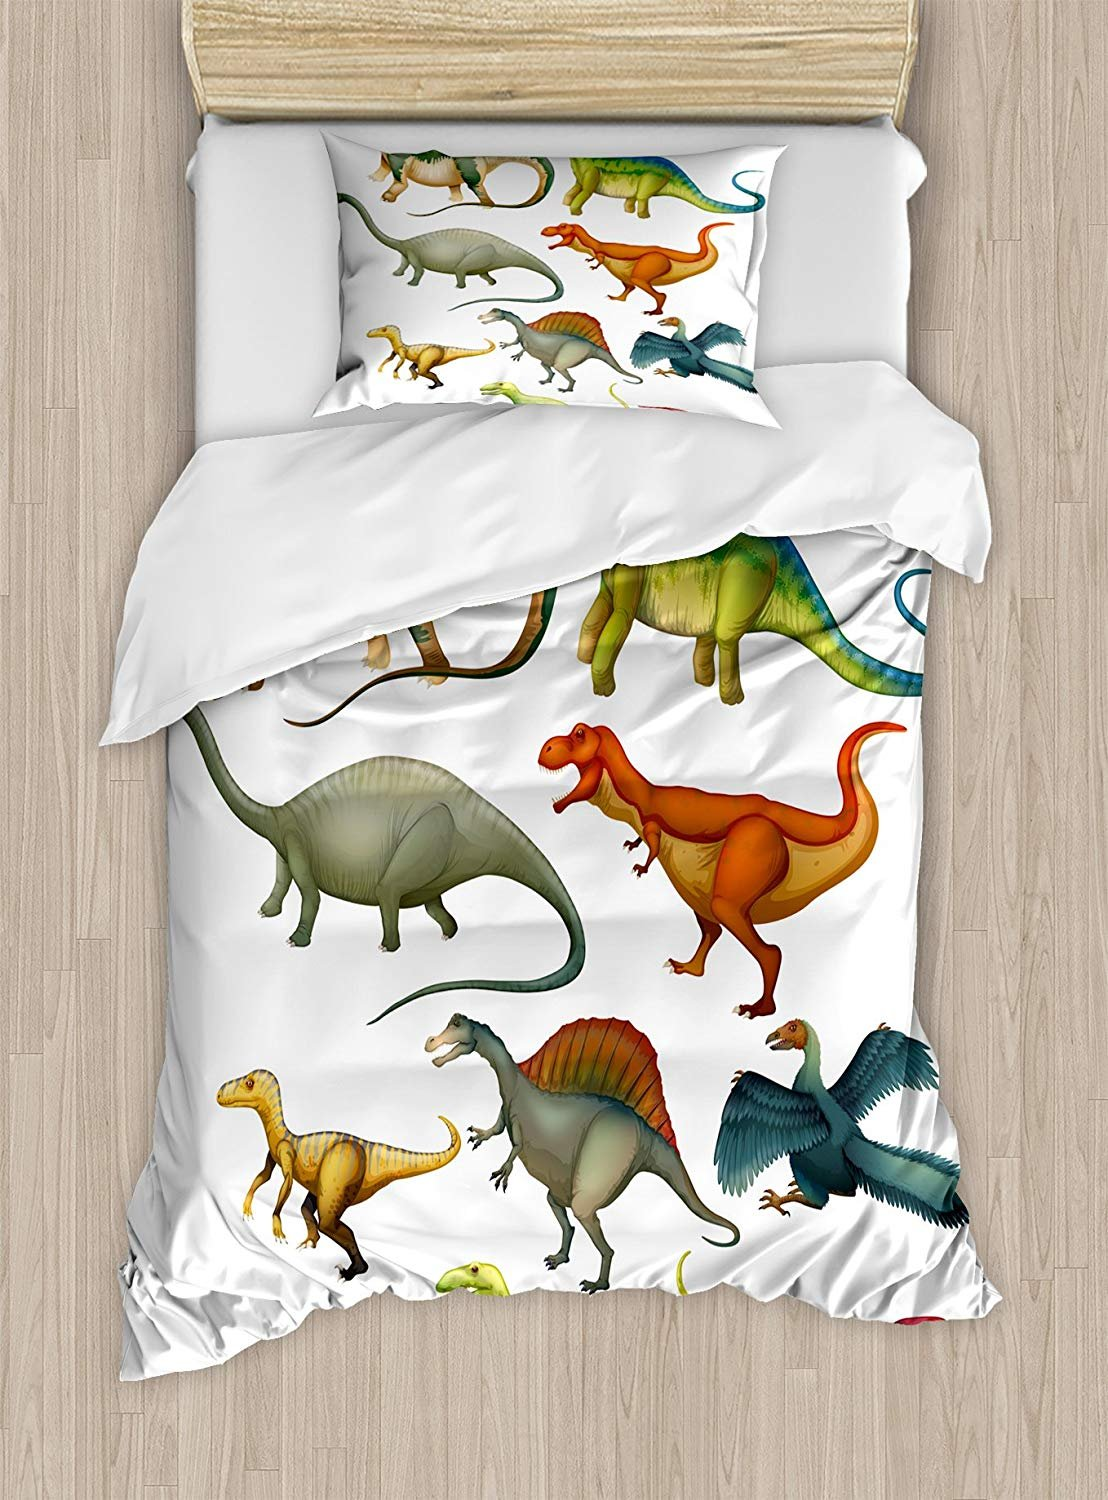 GreaBen Twin XL Extra Long Bedding Set,Dinosaur Duvet Cover Set,Various Different Ancient Animals from Jurassic Period Cartoon Collection Mammals,Include 1 Comforter Cover 1 Bed Sheets 2 Pillow Cases